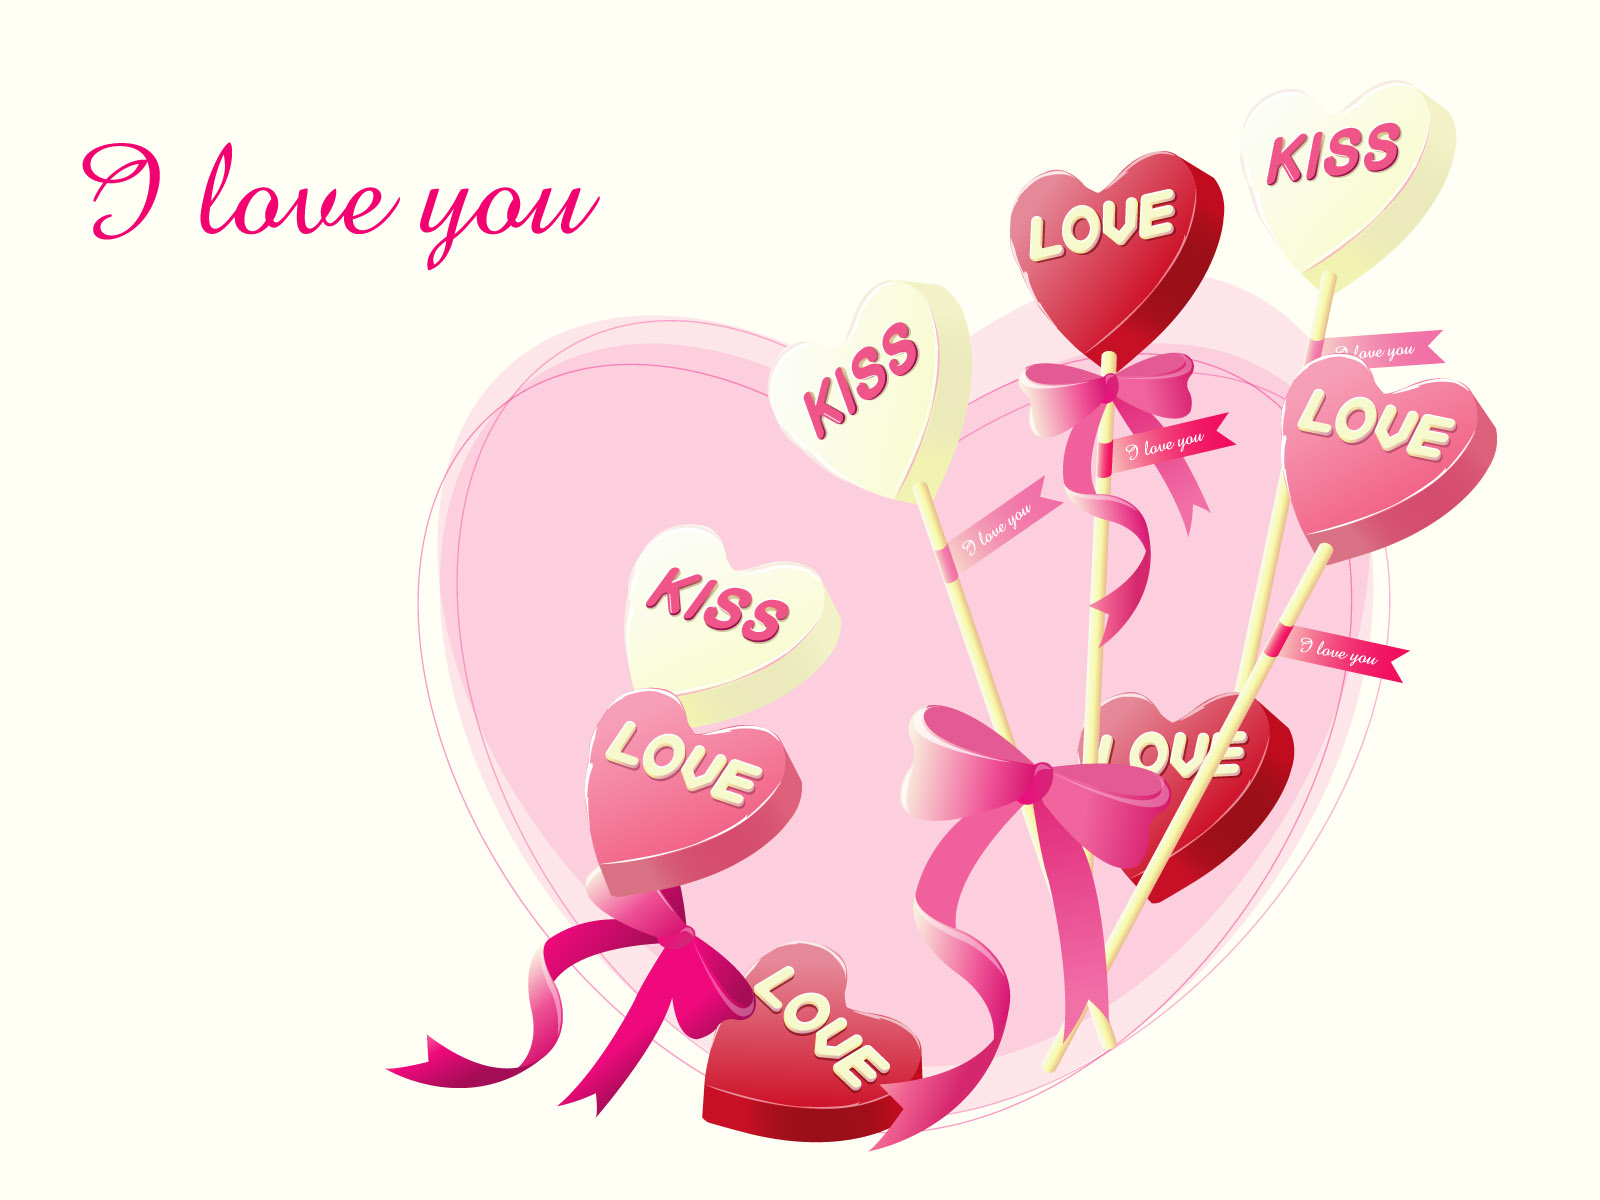 Desktop Wallpaper I Love You : I Love You Desktop Wallpapers - Wallpaper, High Definition, High Quality, Widescreen